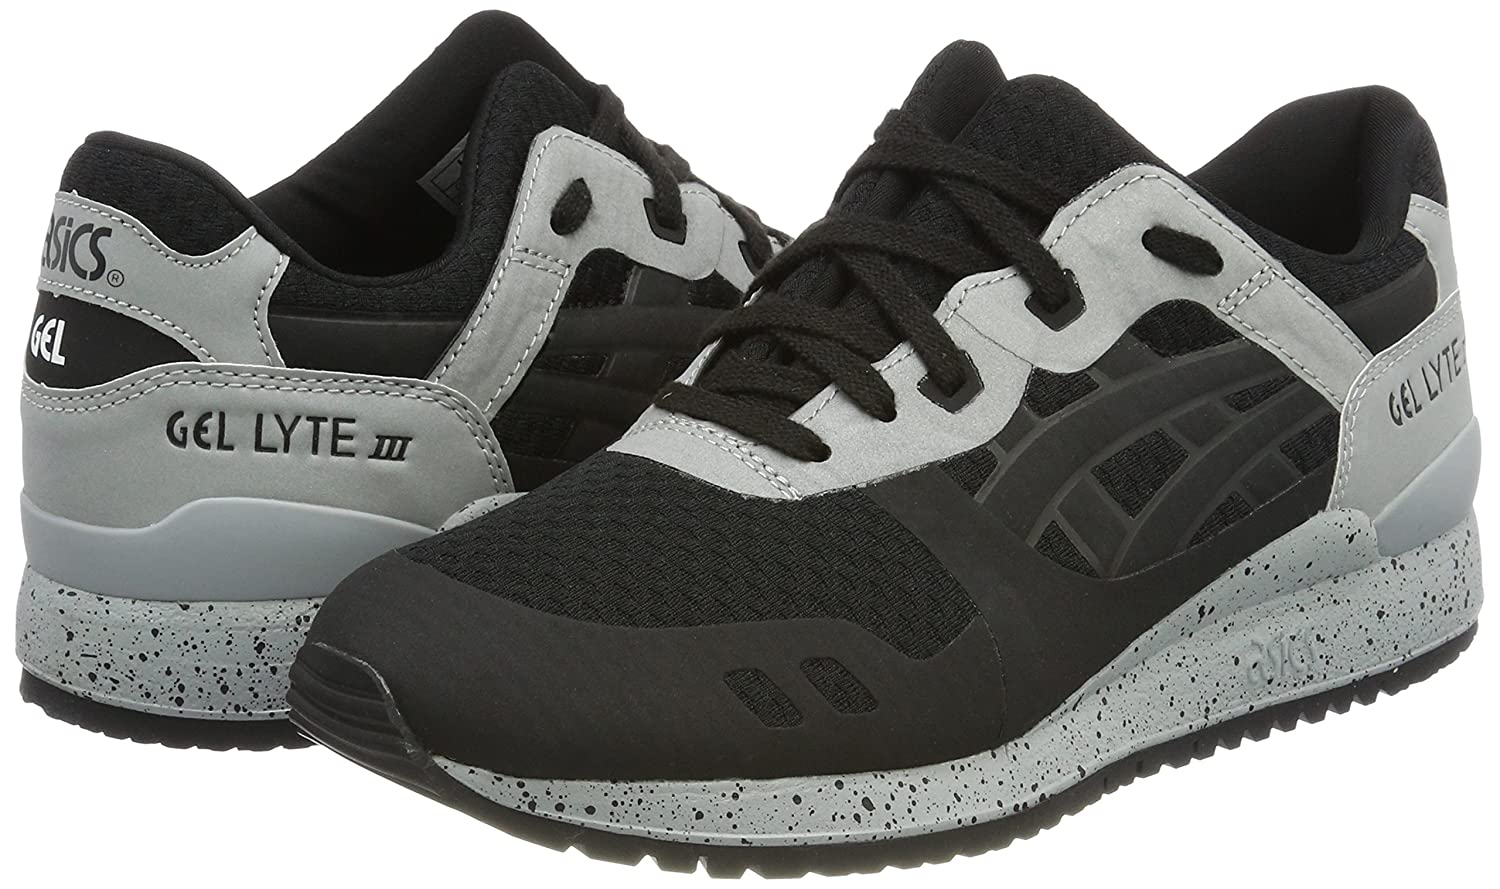 Ns Lyte Baskets Adulte Gel Mixte Chaussures Asics Iii w6qt5fx